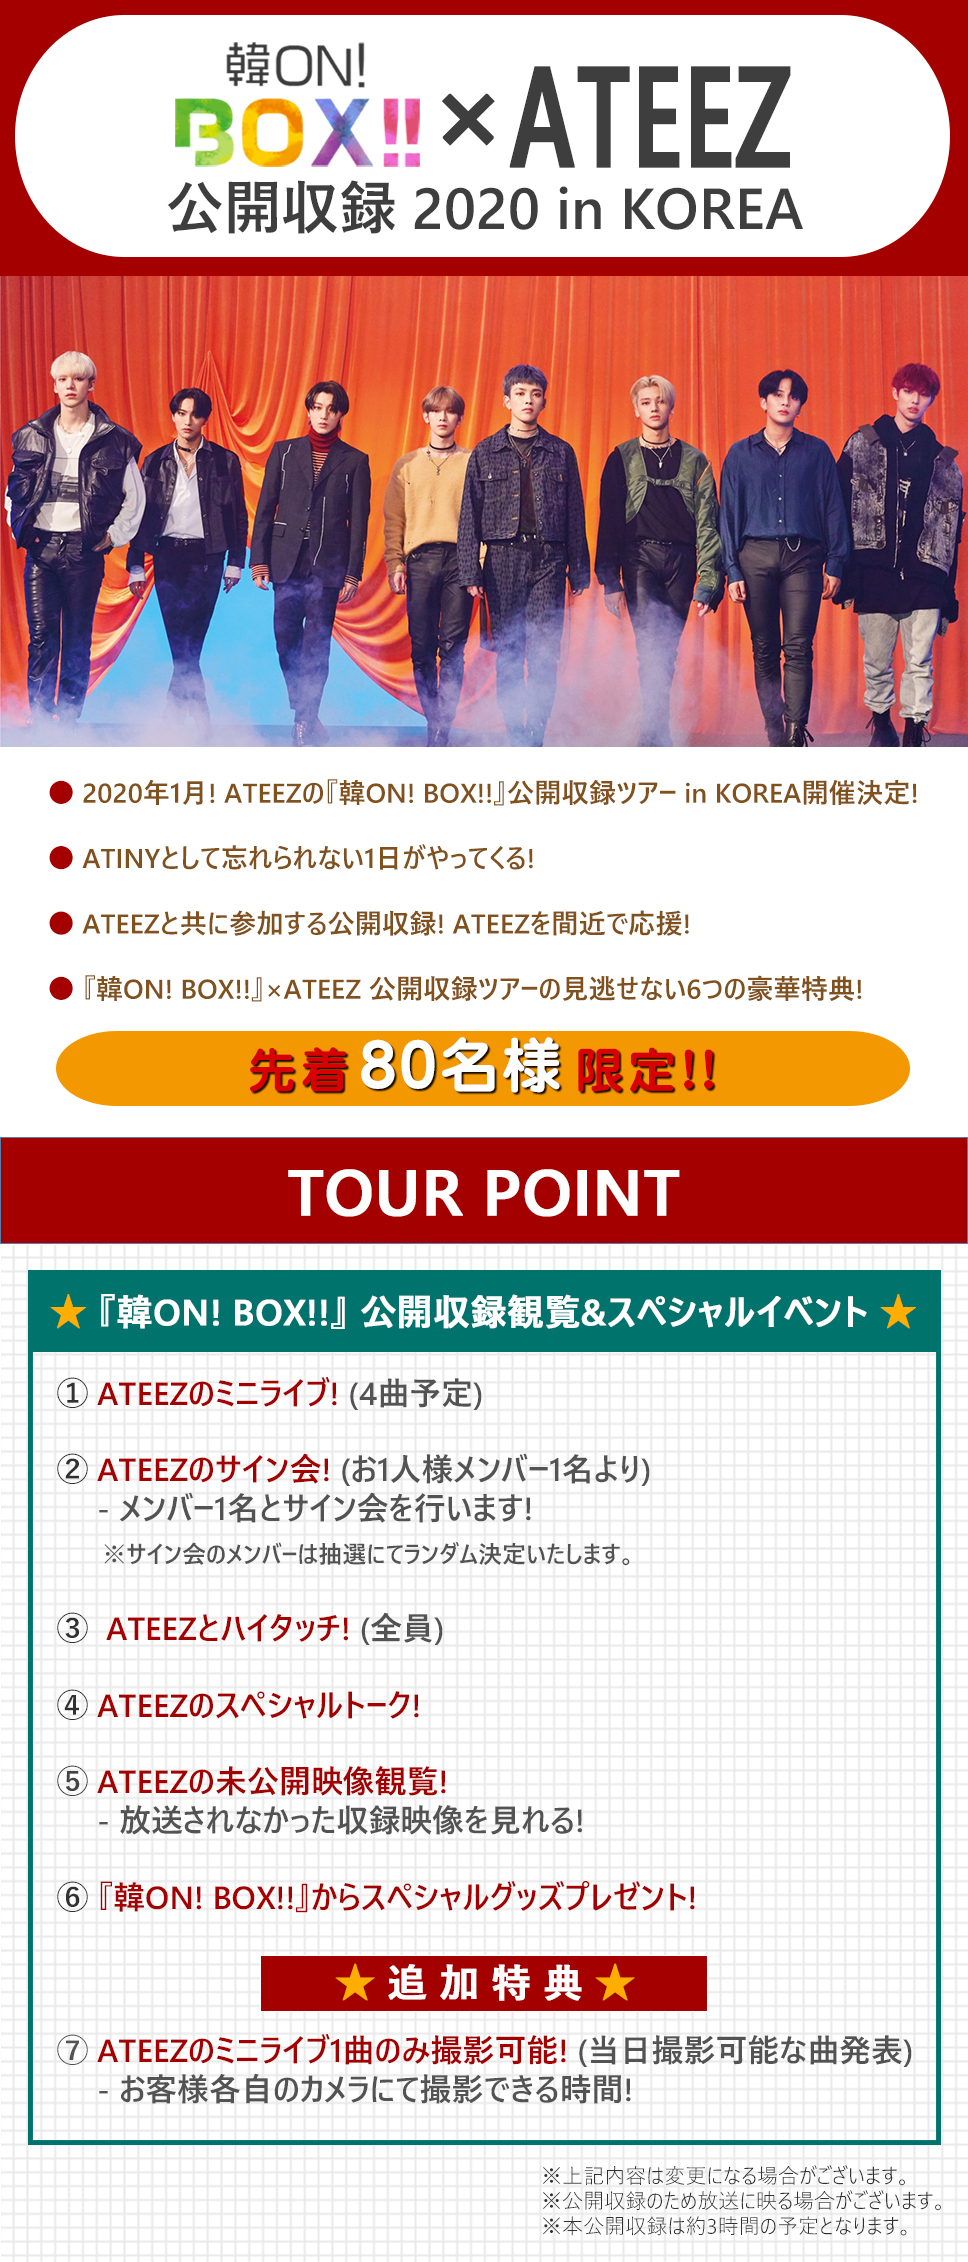 『韓ON! BOX!!』×ATEEZ 公開収録 2020 in KOREA